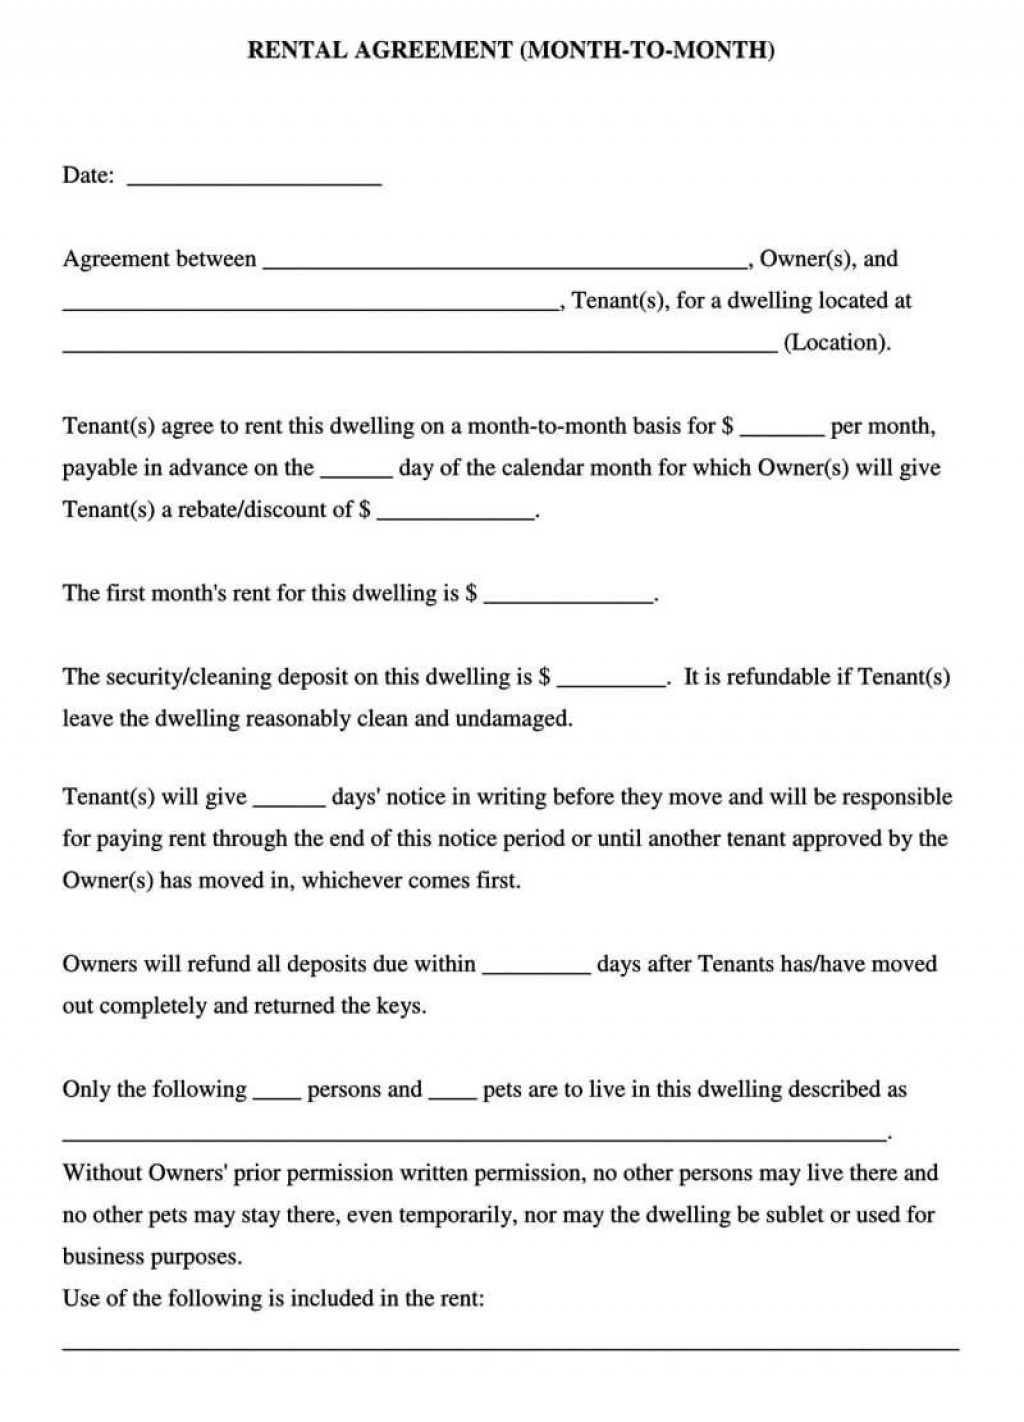 007 Shocking Template For Lease Agreement Free Photo  Printable Room Rental Commercial Uk FloridaLarge